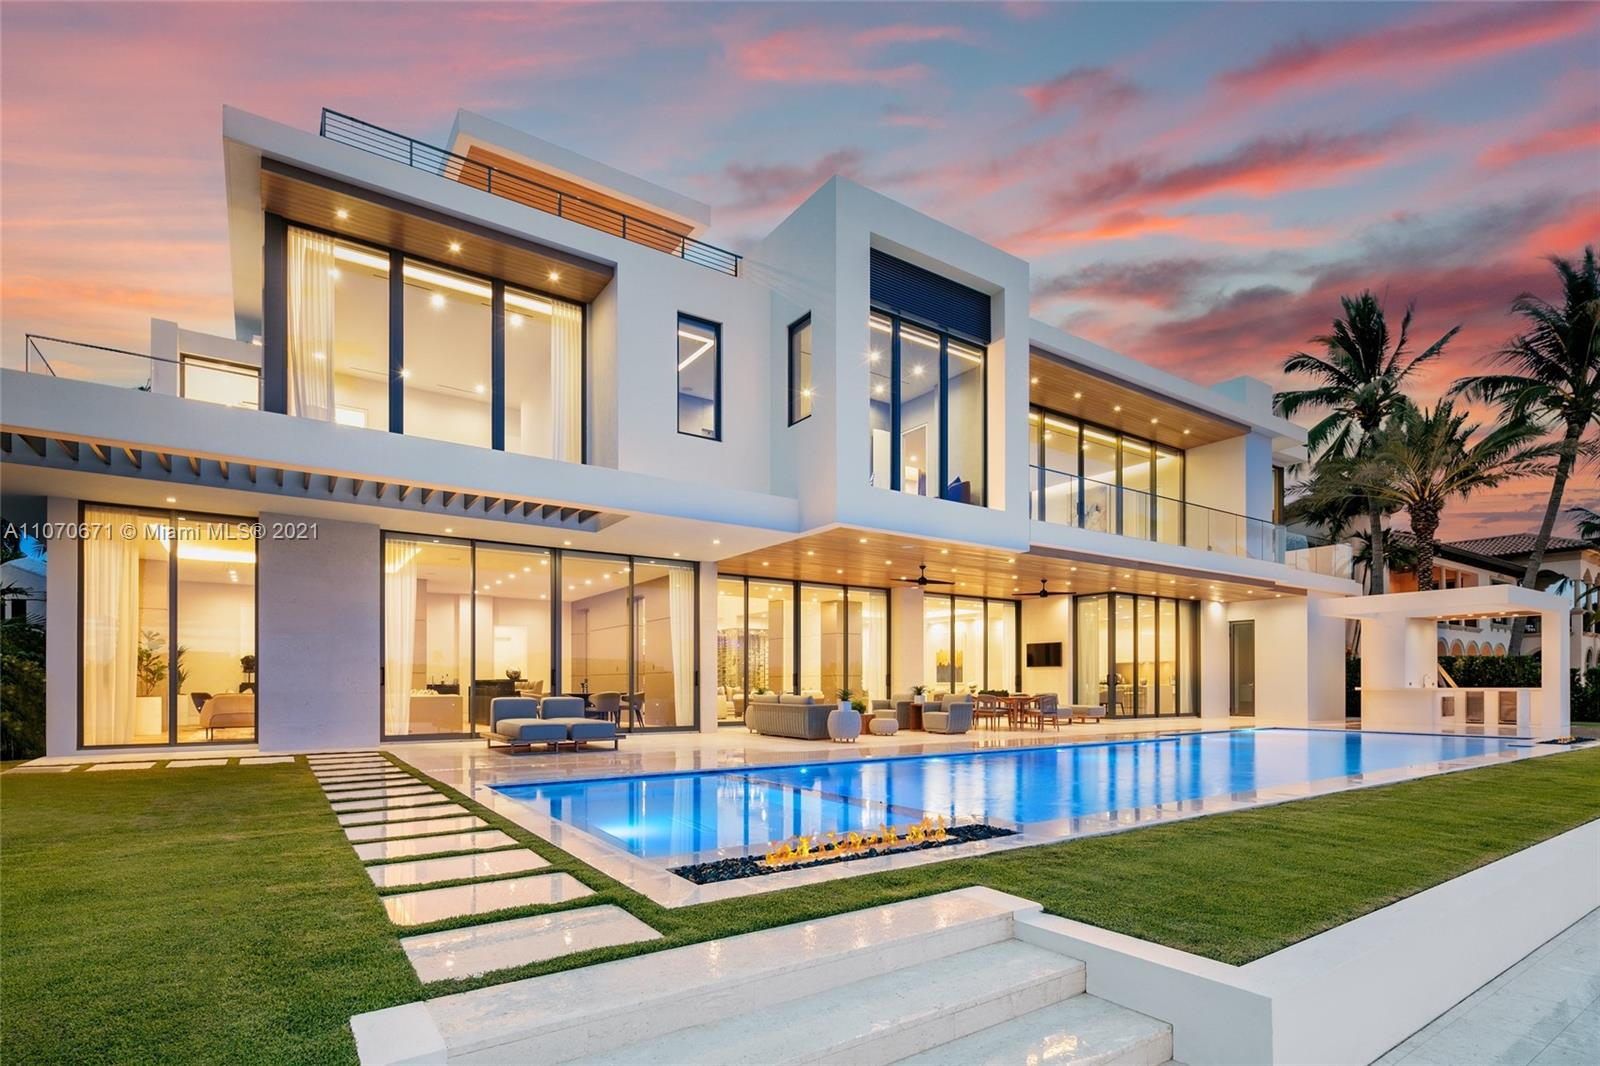 This stunning modern masterpiece boasts 6 beds, 7 full baths & 2 half baths in the highly sought after Harbor Beach gated community. This residence was designed by Randall Stofft & built to perfection by Sarkela Corp. Equipped to dock a mega yacht, this home features vast Intracoastal views that seem too good to be true with 120 ft of water frontage, a lap pool & full summer kitchen. No detail was missed with generous entertaining spaces both indoor and out, 2 master baths, DuChateau oak floors, 200 bottle wine cellar, 2-story marble fireplace, imported custom furniture + artwork, Terzani chandeliers, Italian cabinetry, Dornbracht bath fixtures, Crestron smart home system, separate prep kitchen, lounge/bar area, & full home generator creating your own resort style single family dream home.